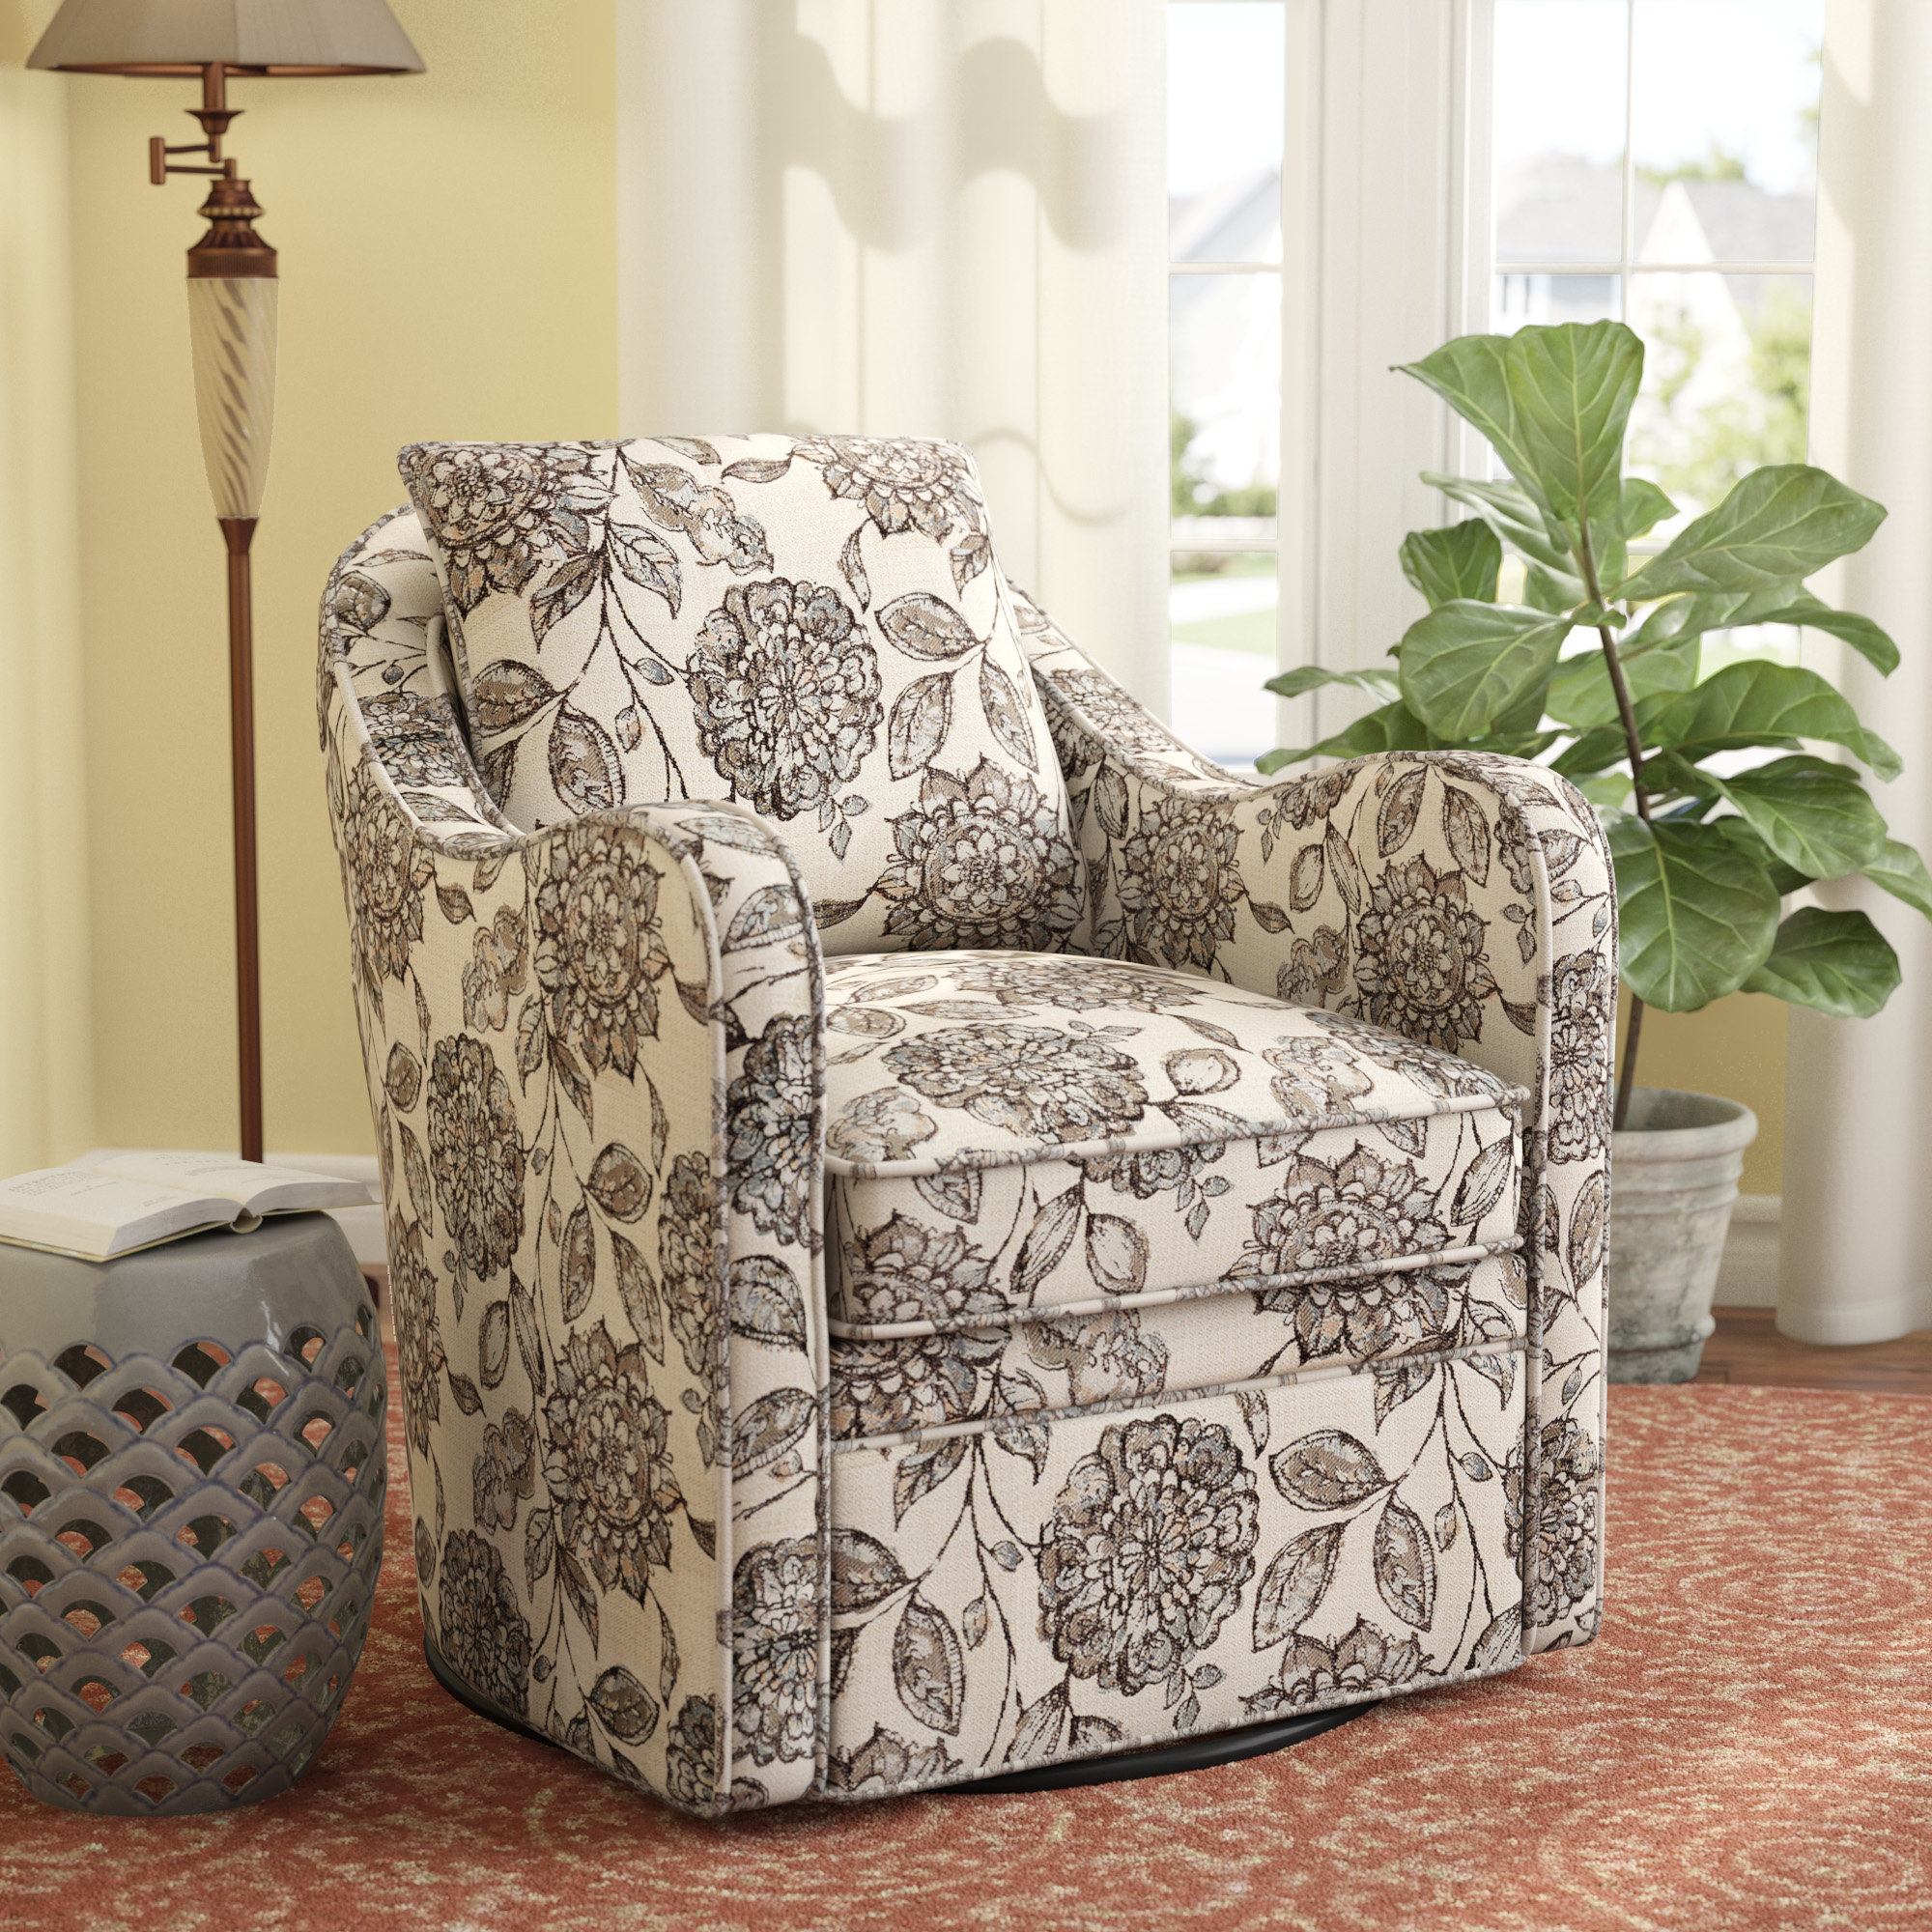 Alcott Hill Brick And Barrel Swivel Armchair & Reviews | Wayfair In Revolve Swivel Accent Chairs (Image 1 of 20)